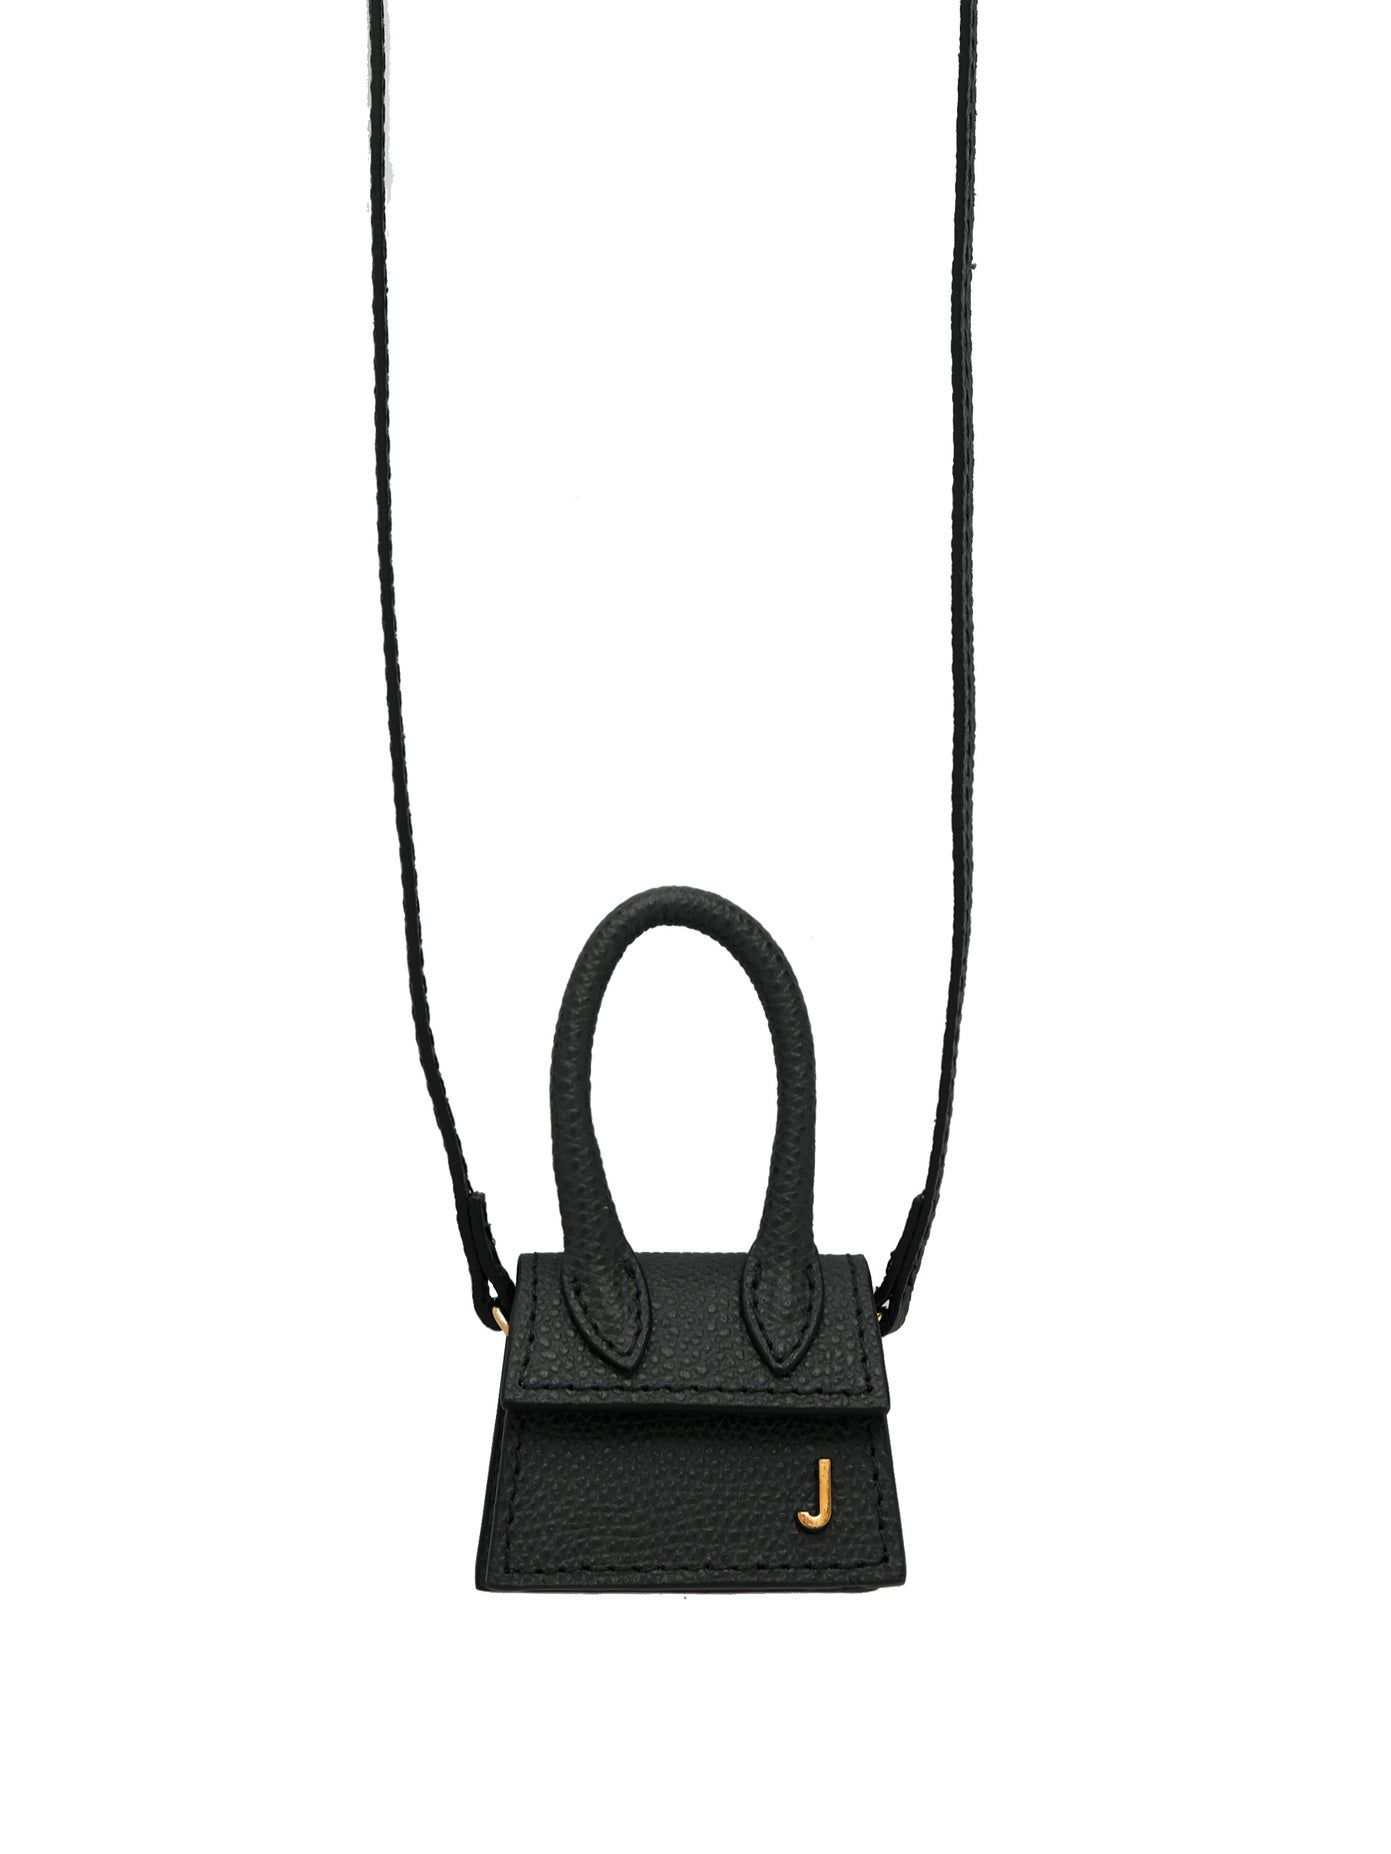 Fendi Are Making Scented Bags A Thing